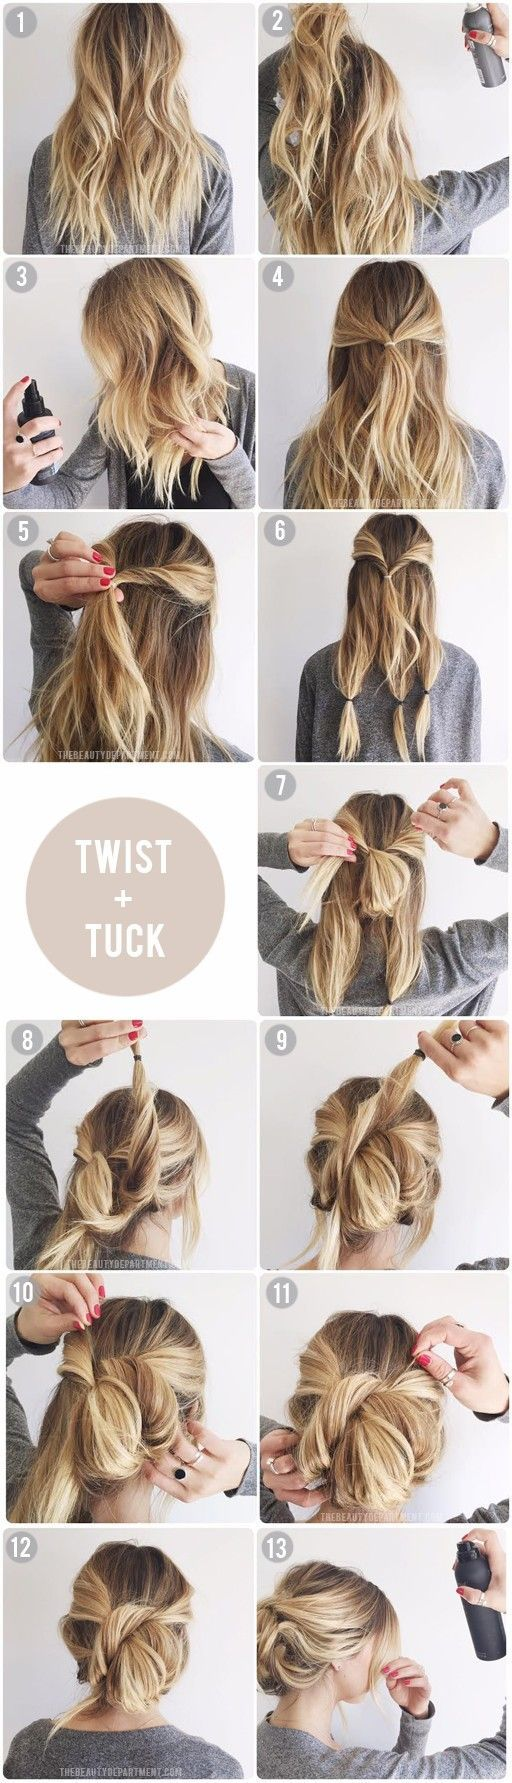 25+ beautiful easy updos for long hair ideas on pinterest | cute